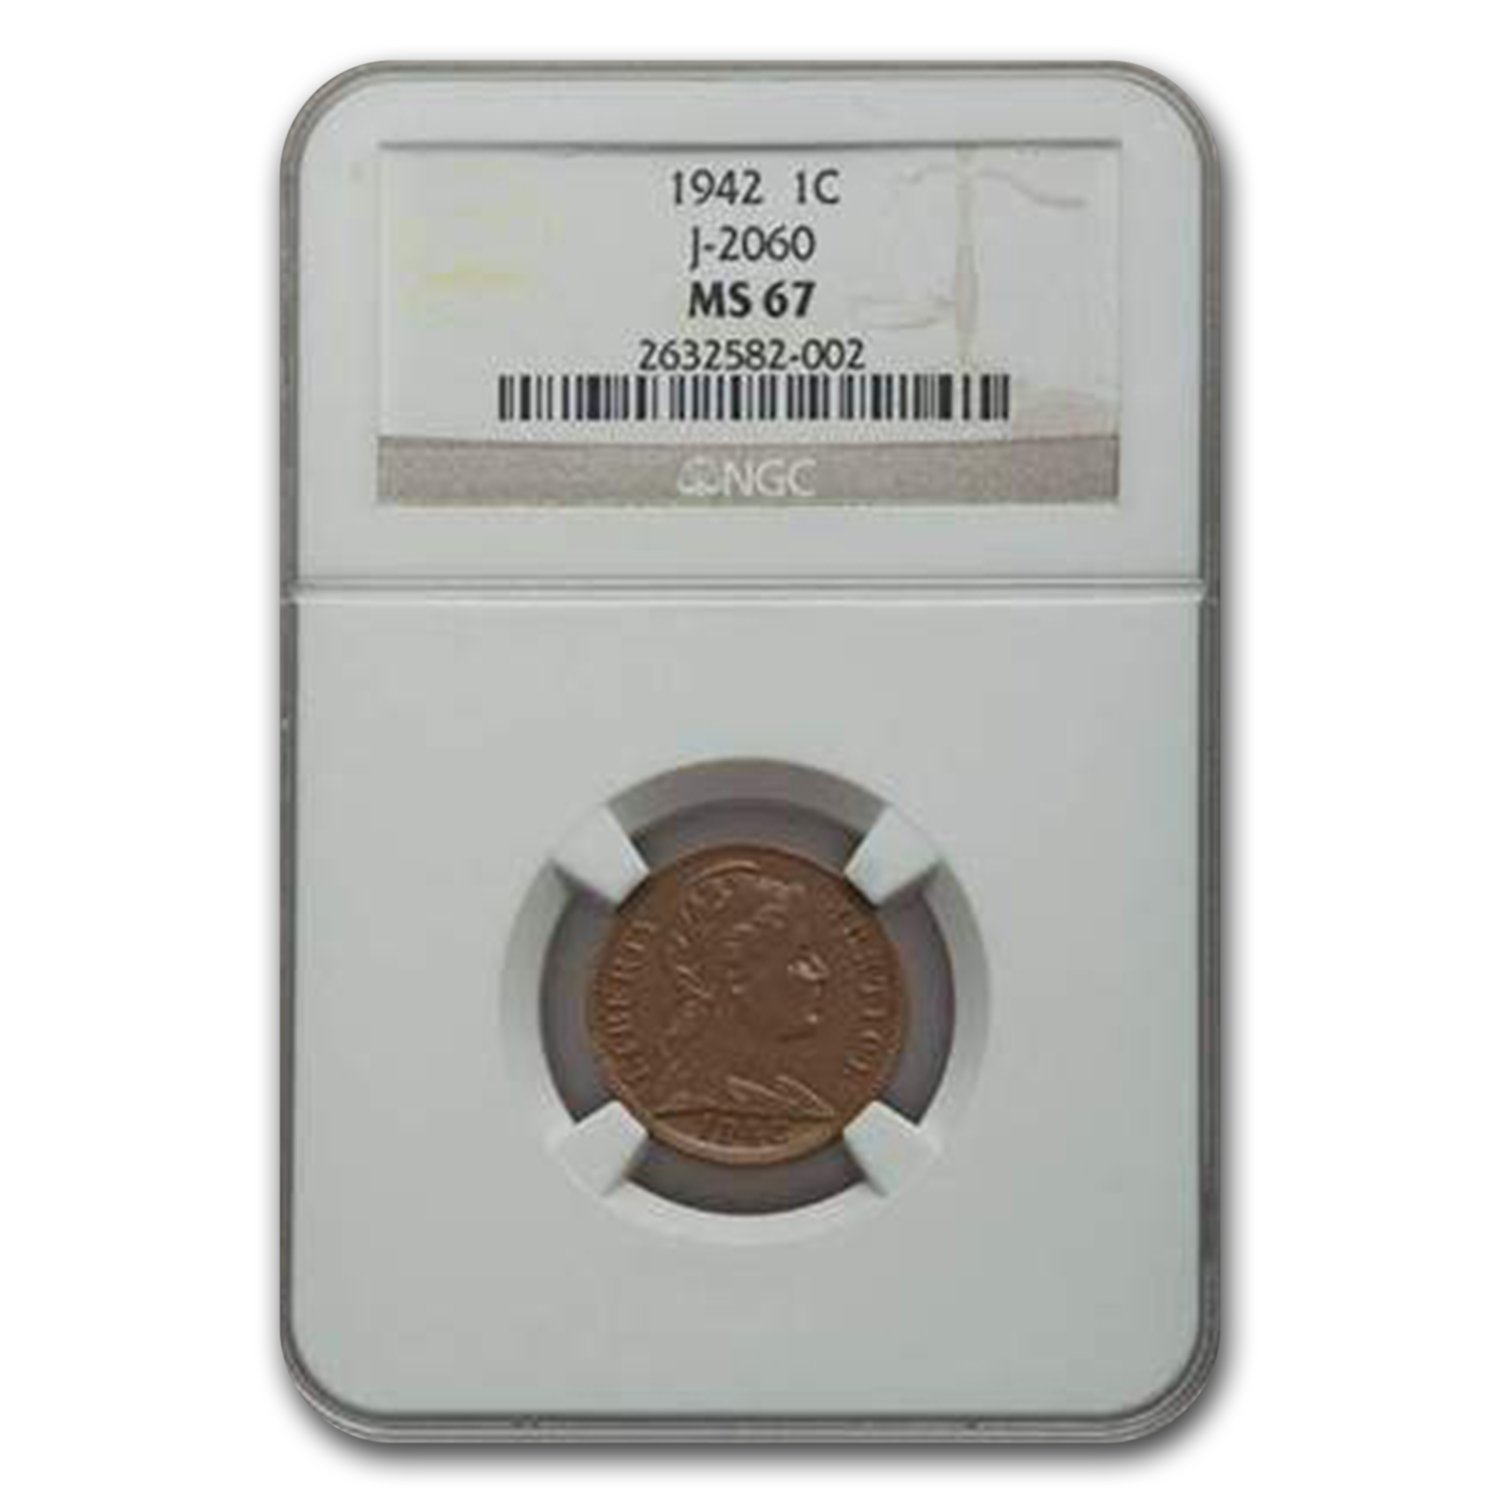 1942 Liberty Head Cent MS-67 NGC (Judd-2060)